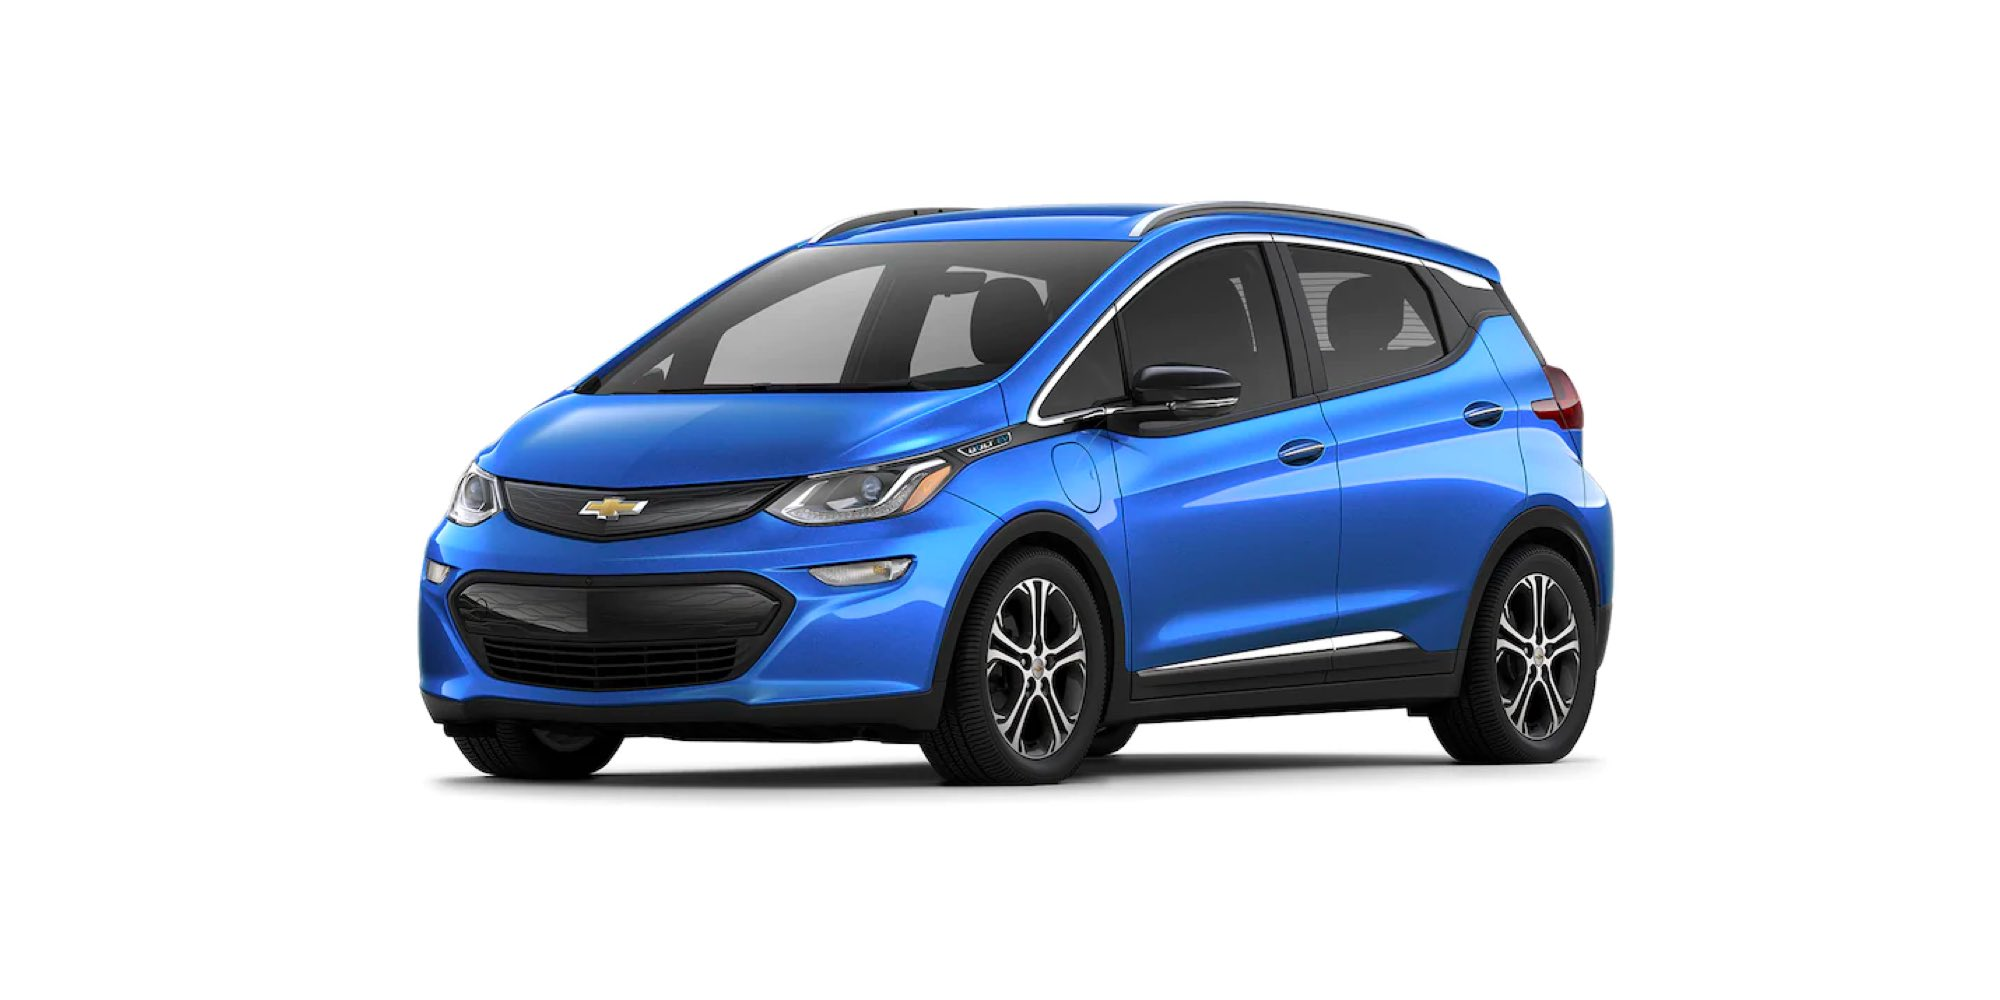 2021 Chevy Bolt EV in Kinetic Blue Metallic